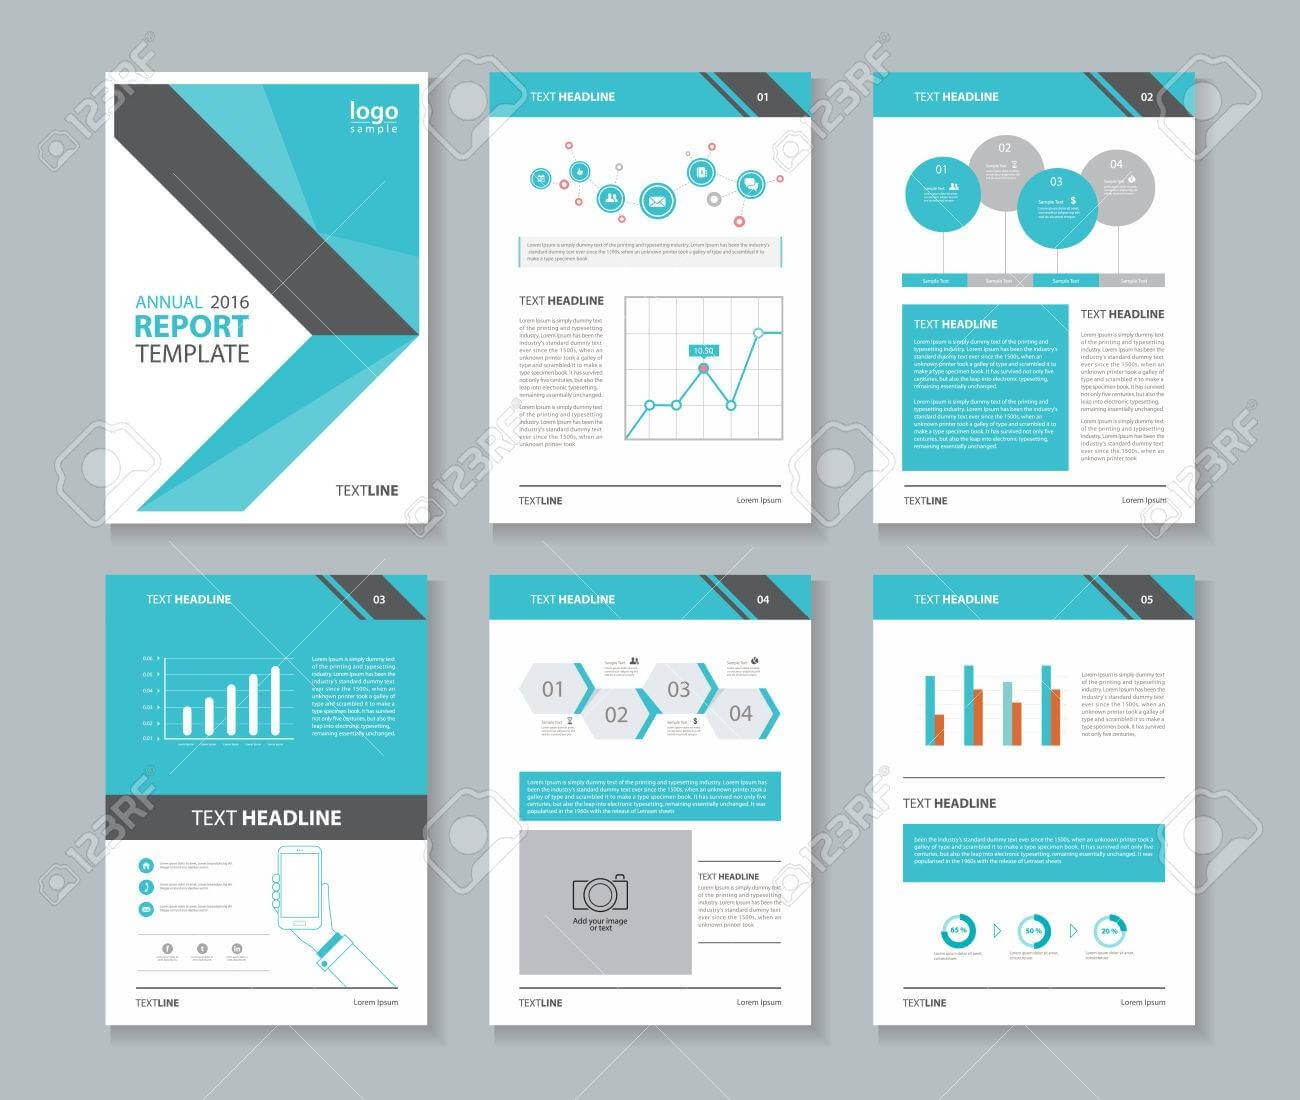 001 Template Ideas Annual Report Layout Frightening Free Throughout Word Annual Report Template